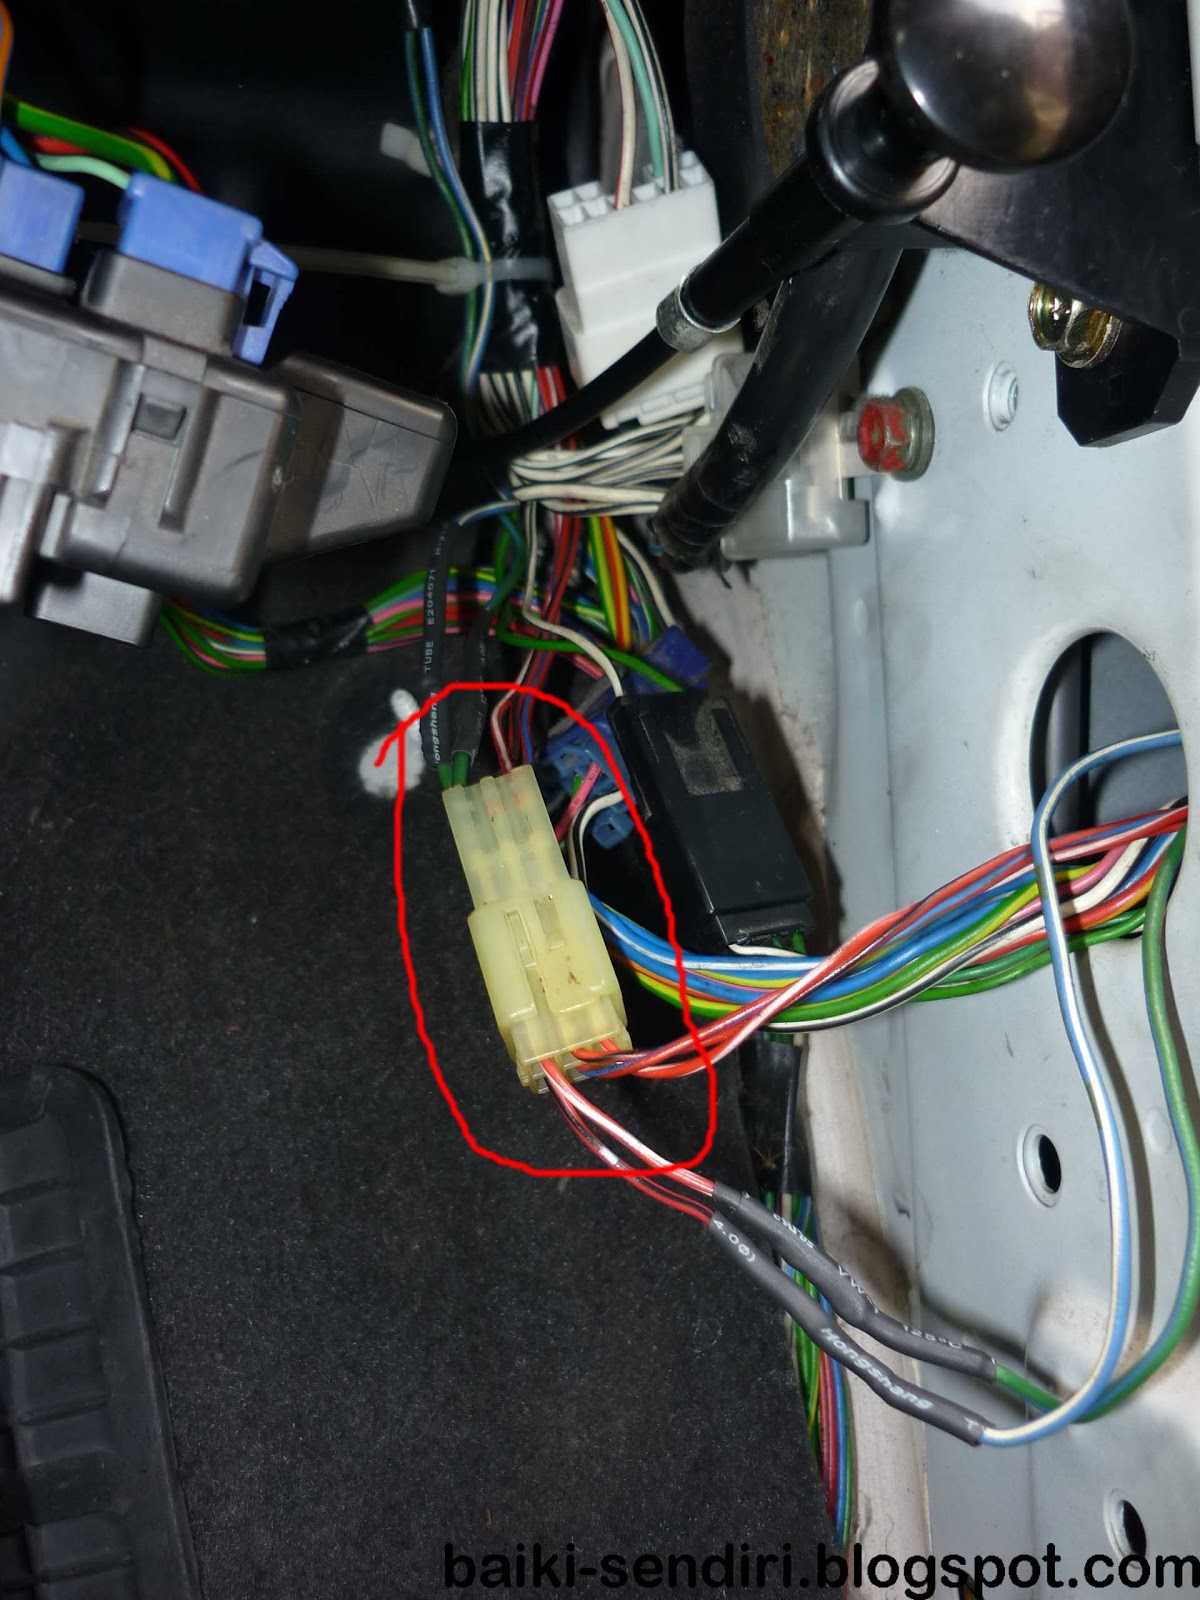 Diy Fix On Your Own Daihatsu L7 Perodua Kelisa Autoflip Irregular Idle Cuore 10 Youtube In With Fully Manual Side Mirror Factory Left The Connector Find Suitable Wire And Plug